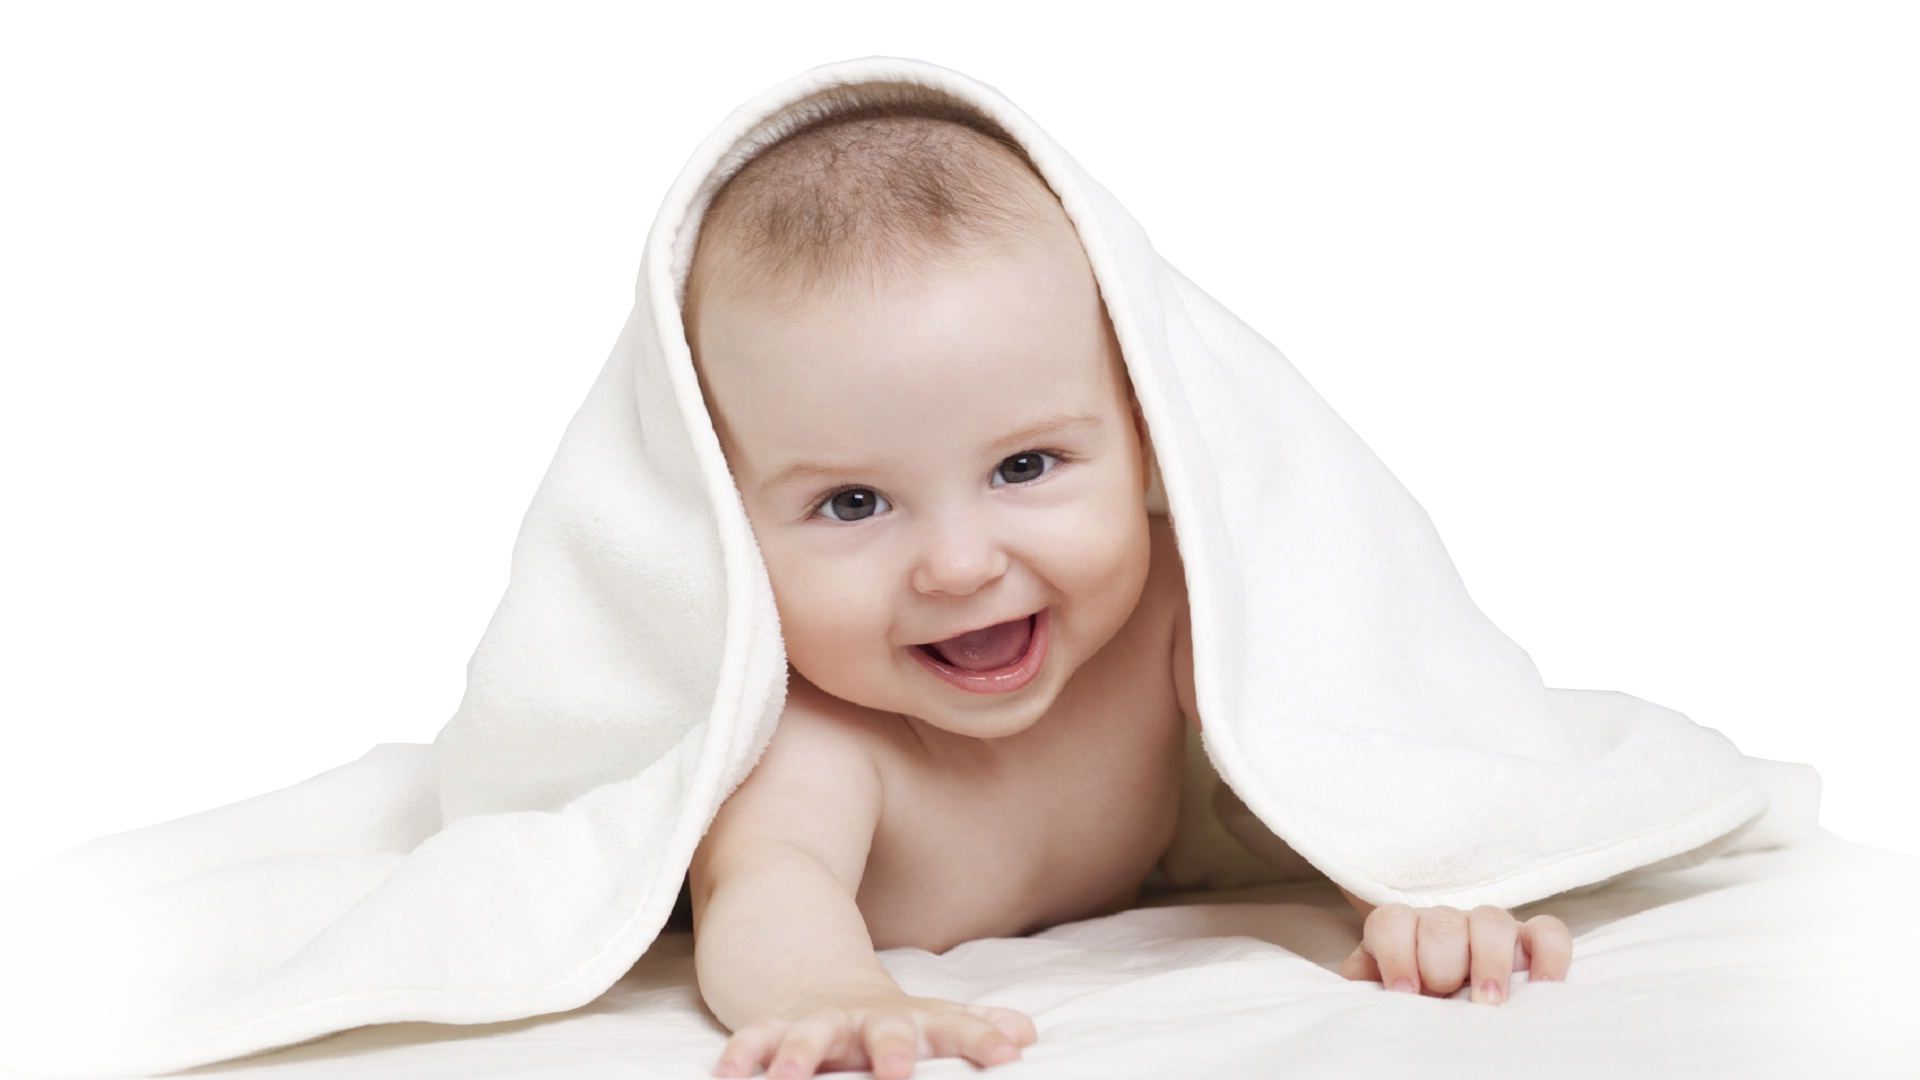 PNG HD Baby - 153805